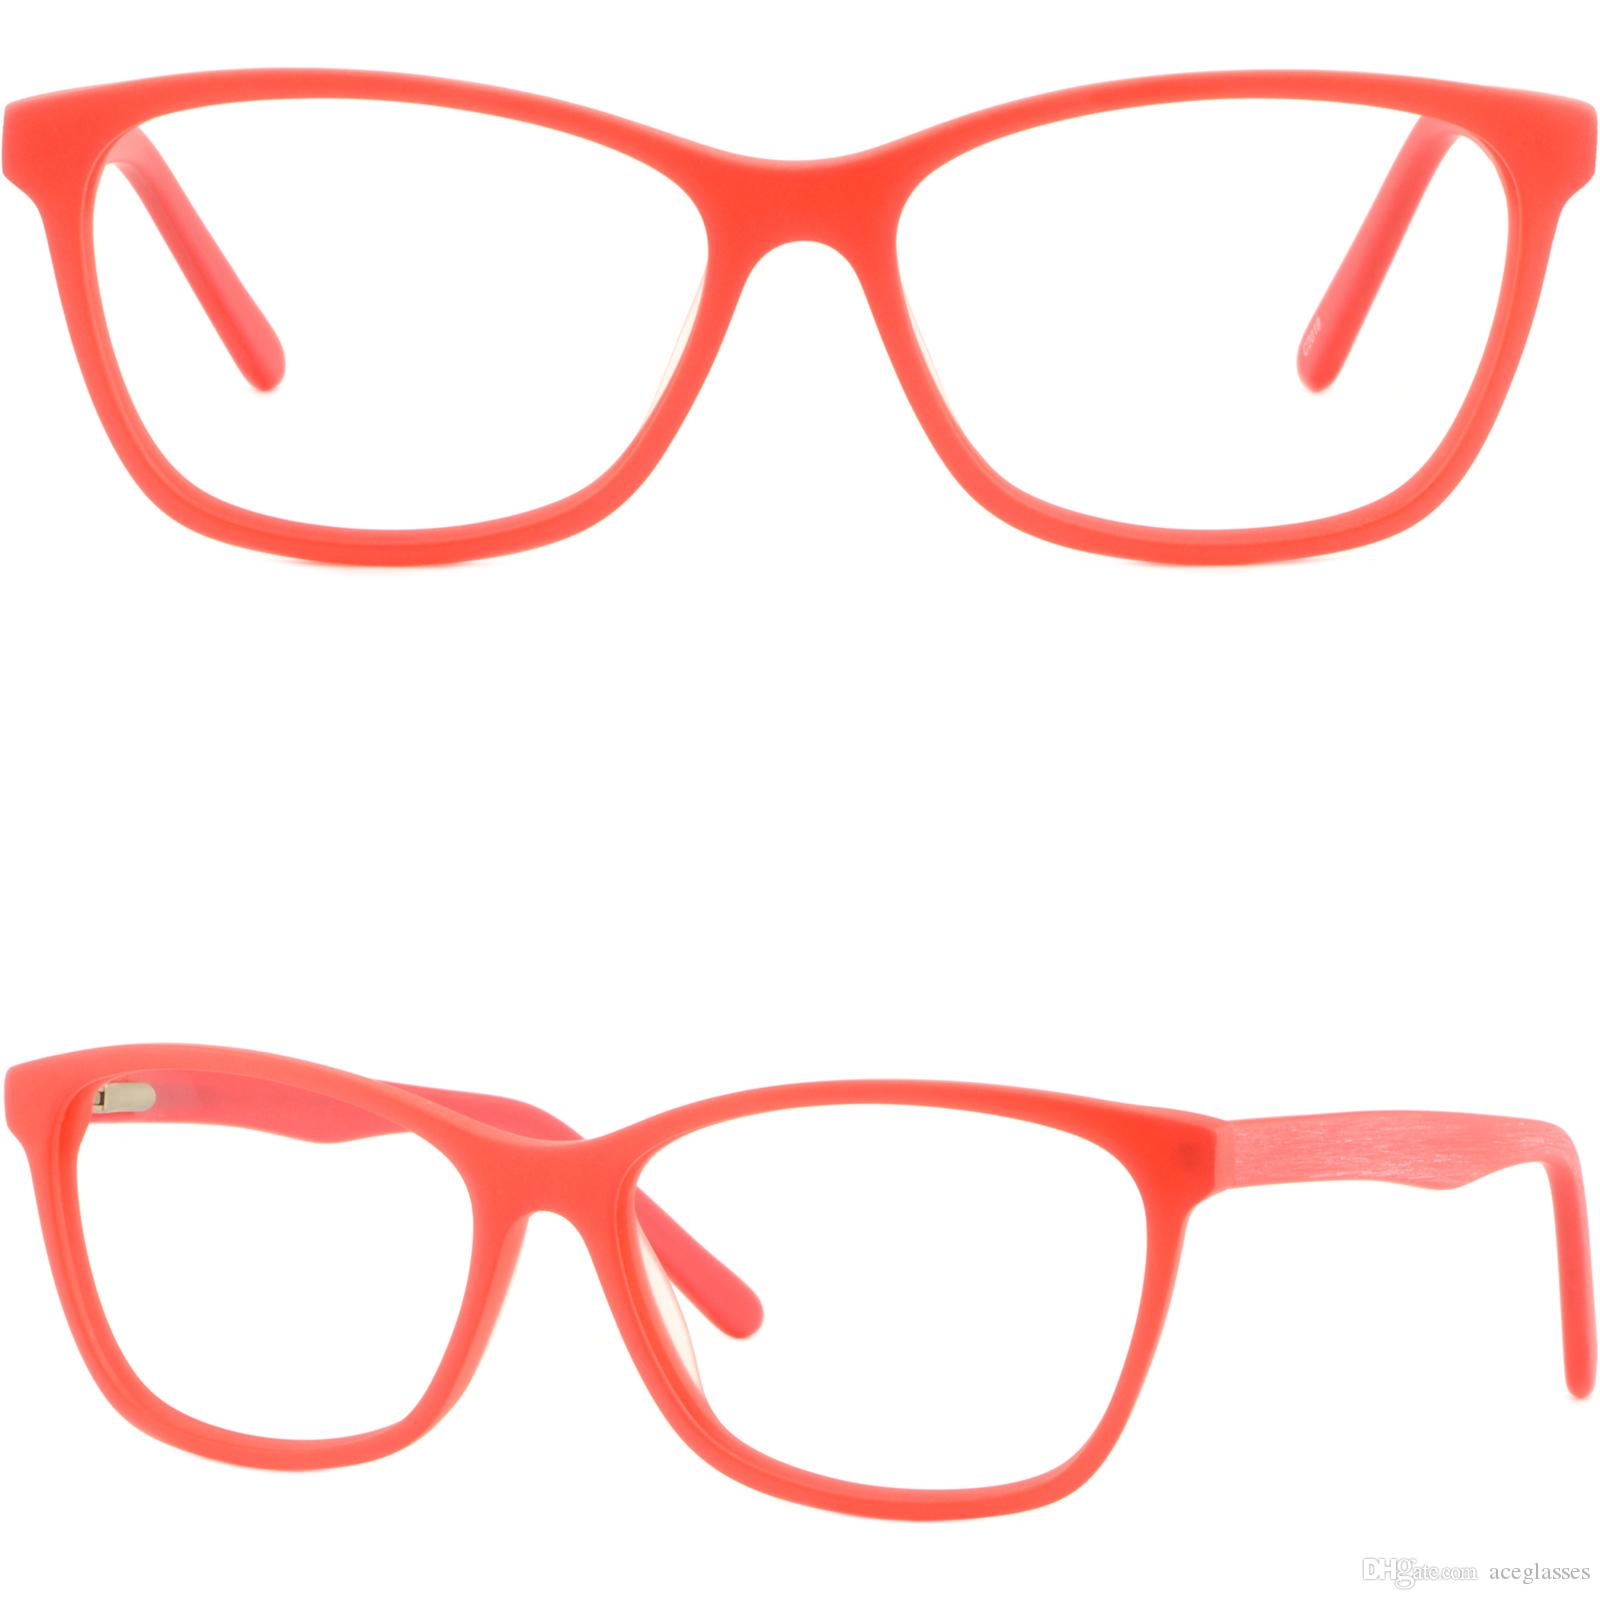 78e4b8da3a Red Women S Acetate Frames Spring Hinges Light Prescription Glasses Plastic  Red Eyeglass Frames Cool Glasses Frames From Aceglasses